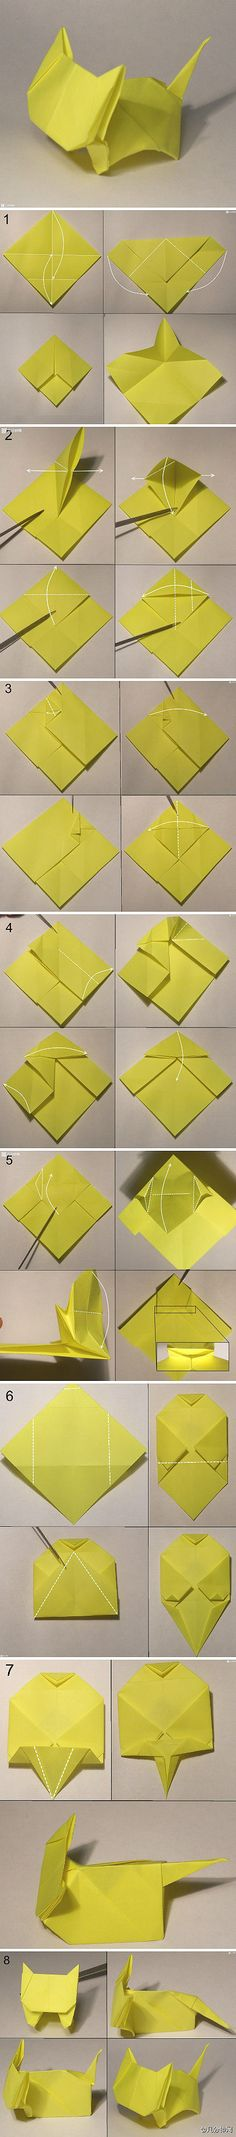 We've always wanted to build origami shapes, but it looked too hard to learn. Turns out we were wrong, we found these awesome origami tutorials that would allow any beginner to start building origami shapes. Source by Diy Origami, Gato Origami, Origami Simple, Origami And Kirigami, Paper Crafts Origami, Diy Paper, Oragami, Origami Boxes, Dollar Origami